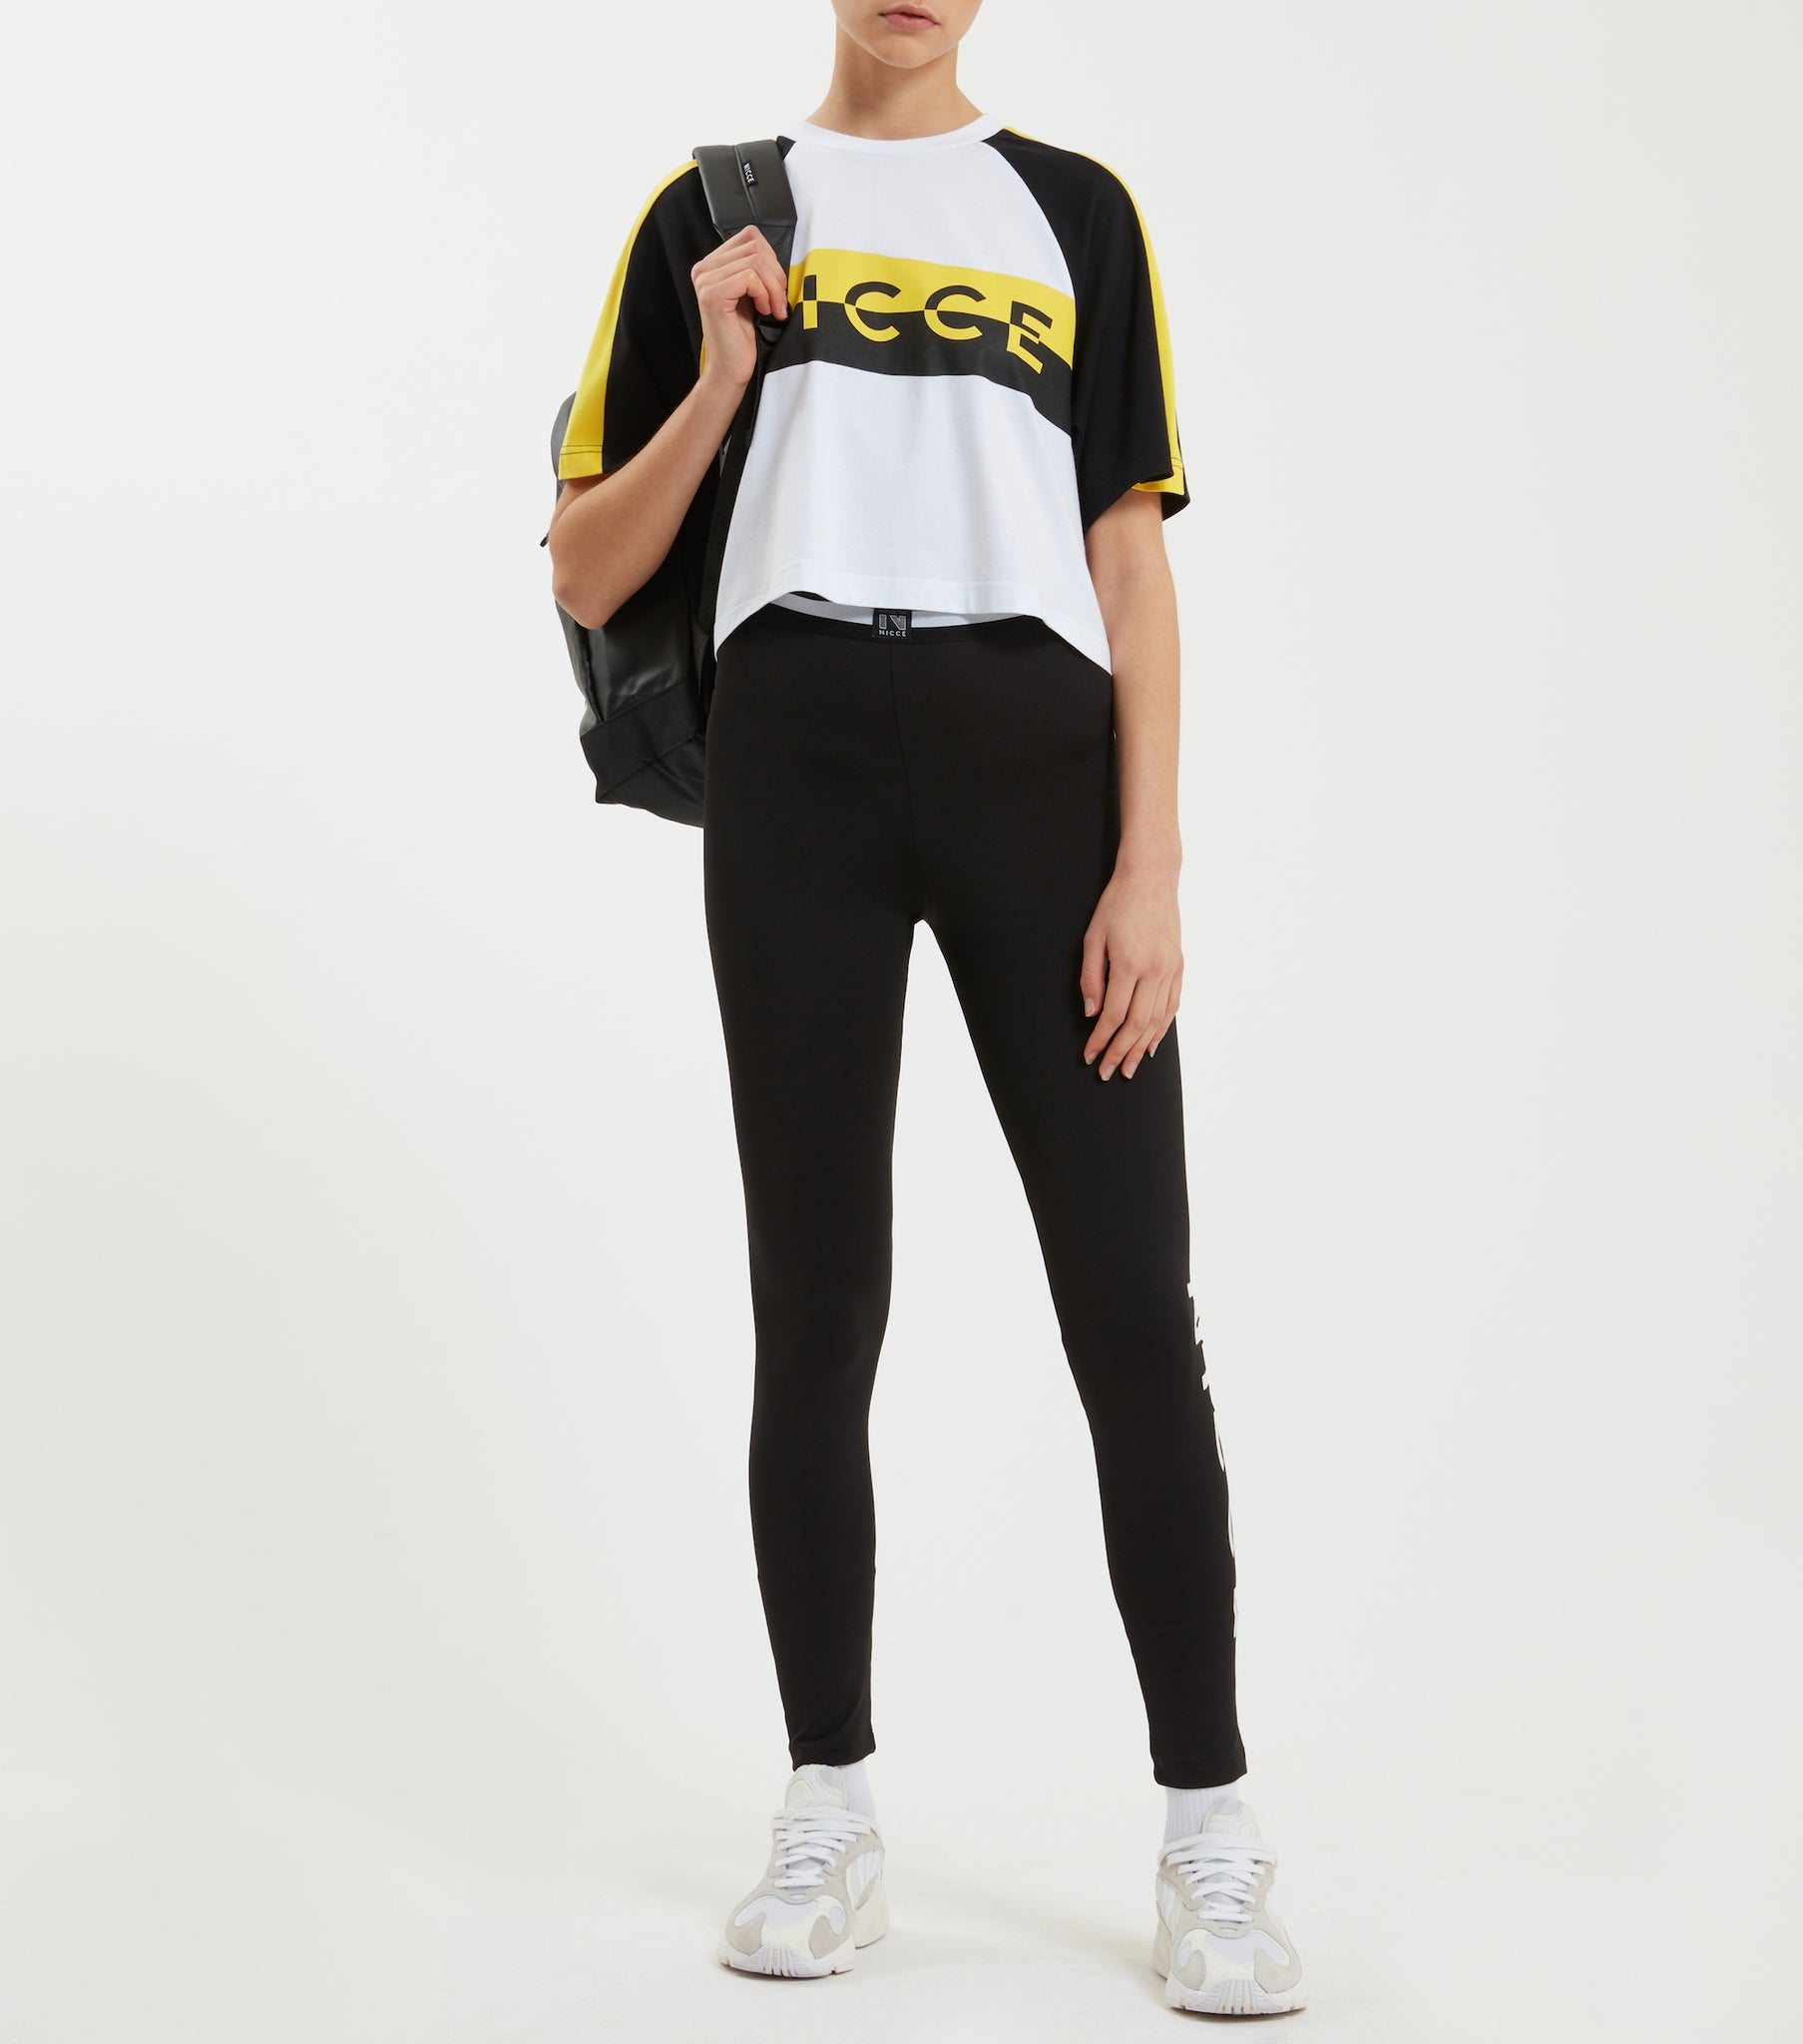 Acton t-shirt in white. Featuring crew neck, short raglan sleeves, cropped design and contrast split logo print in yellow and black. Pair with joggers or denim.